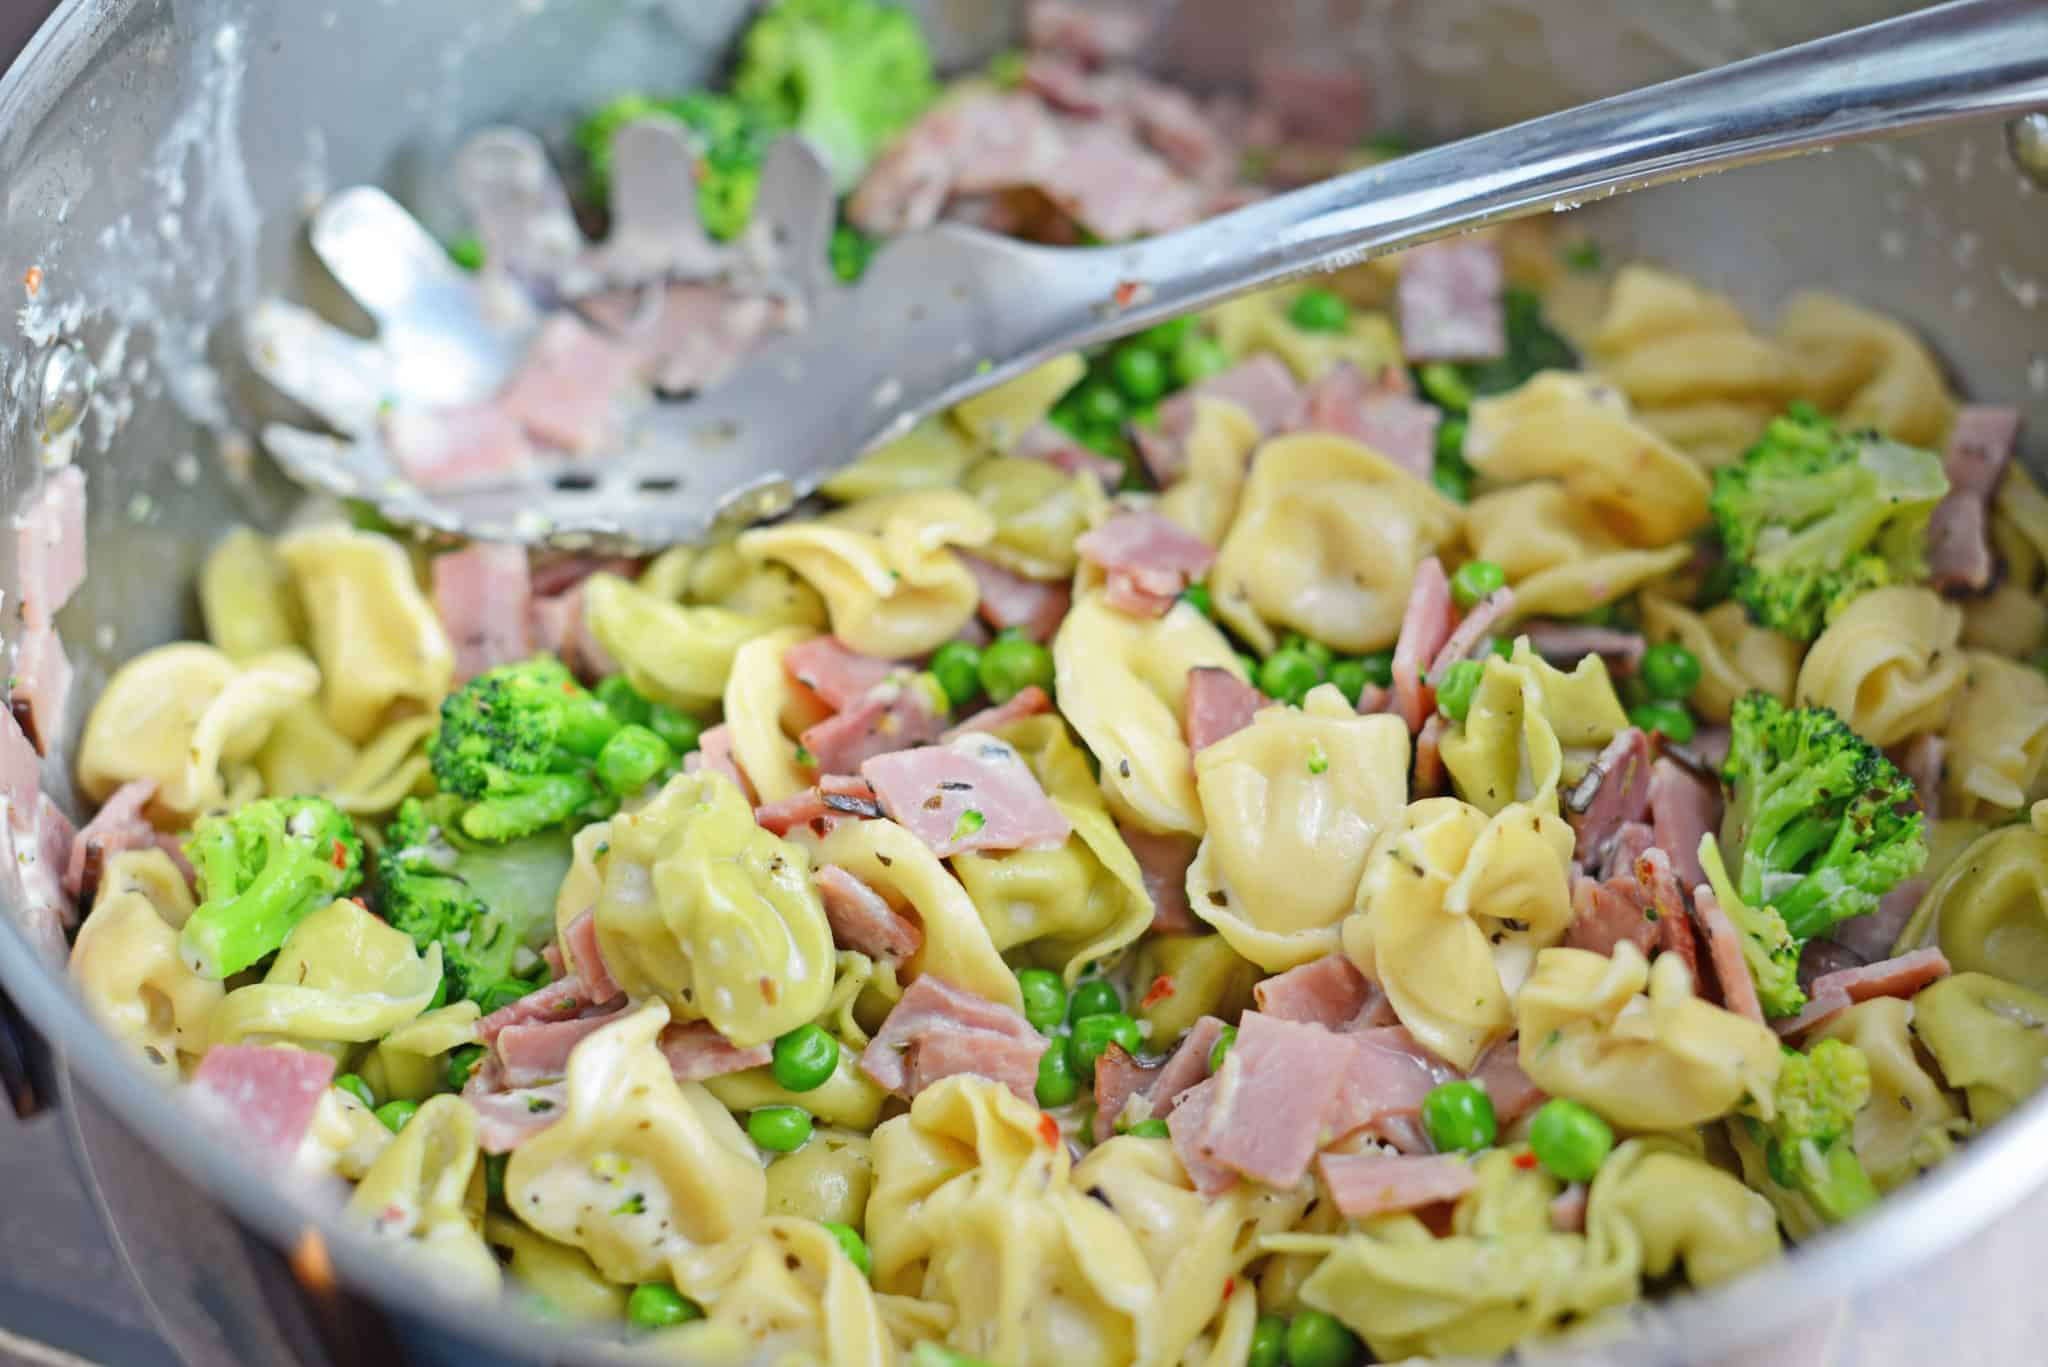 Creamy Tortellini and Ham Pasta - An easy pasta recipe ready in just 20 minutes! Peas, broccoli, ham and cheese tortellini! www.savoryexperiments.com